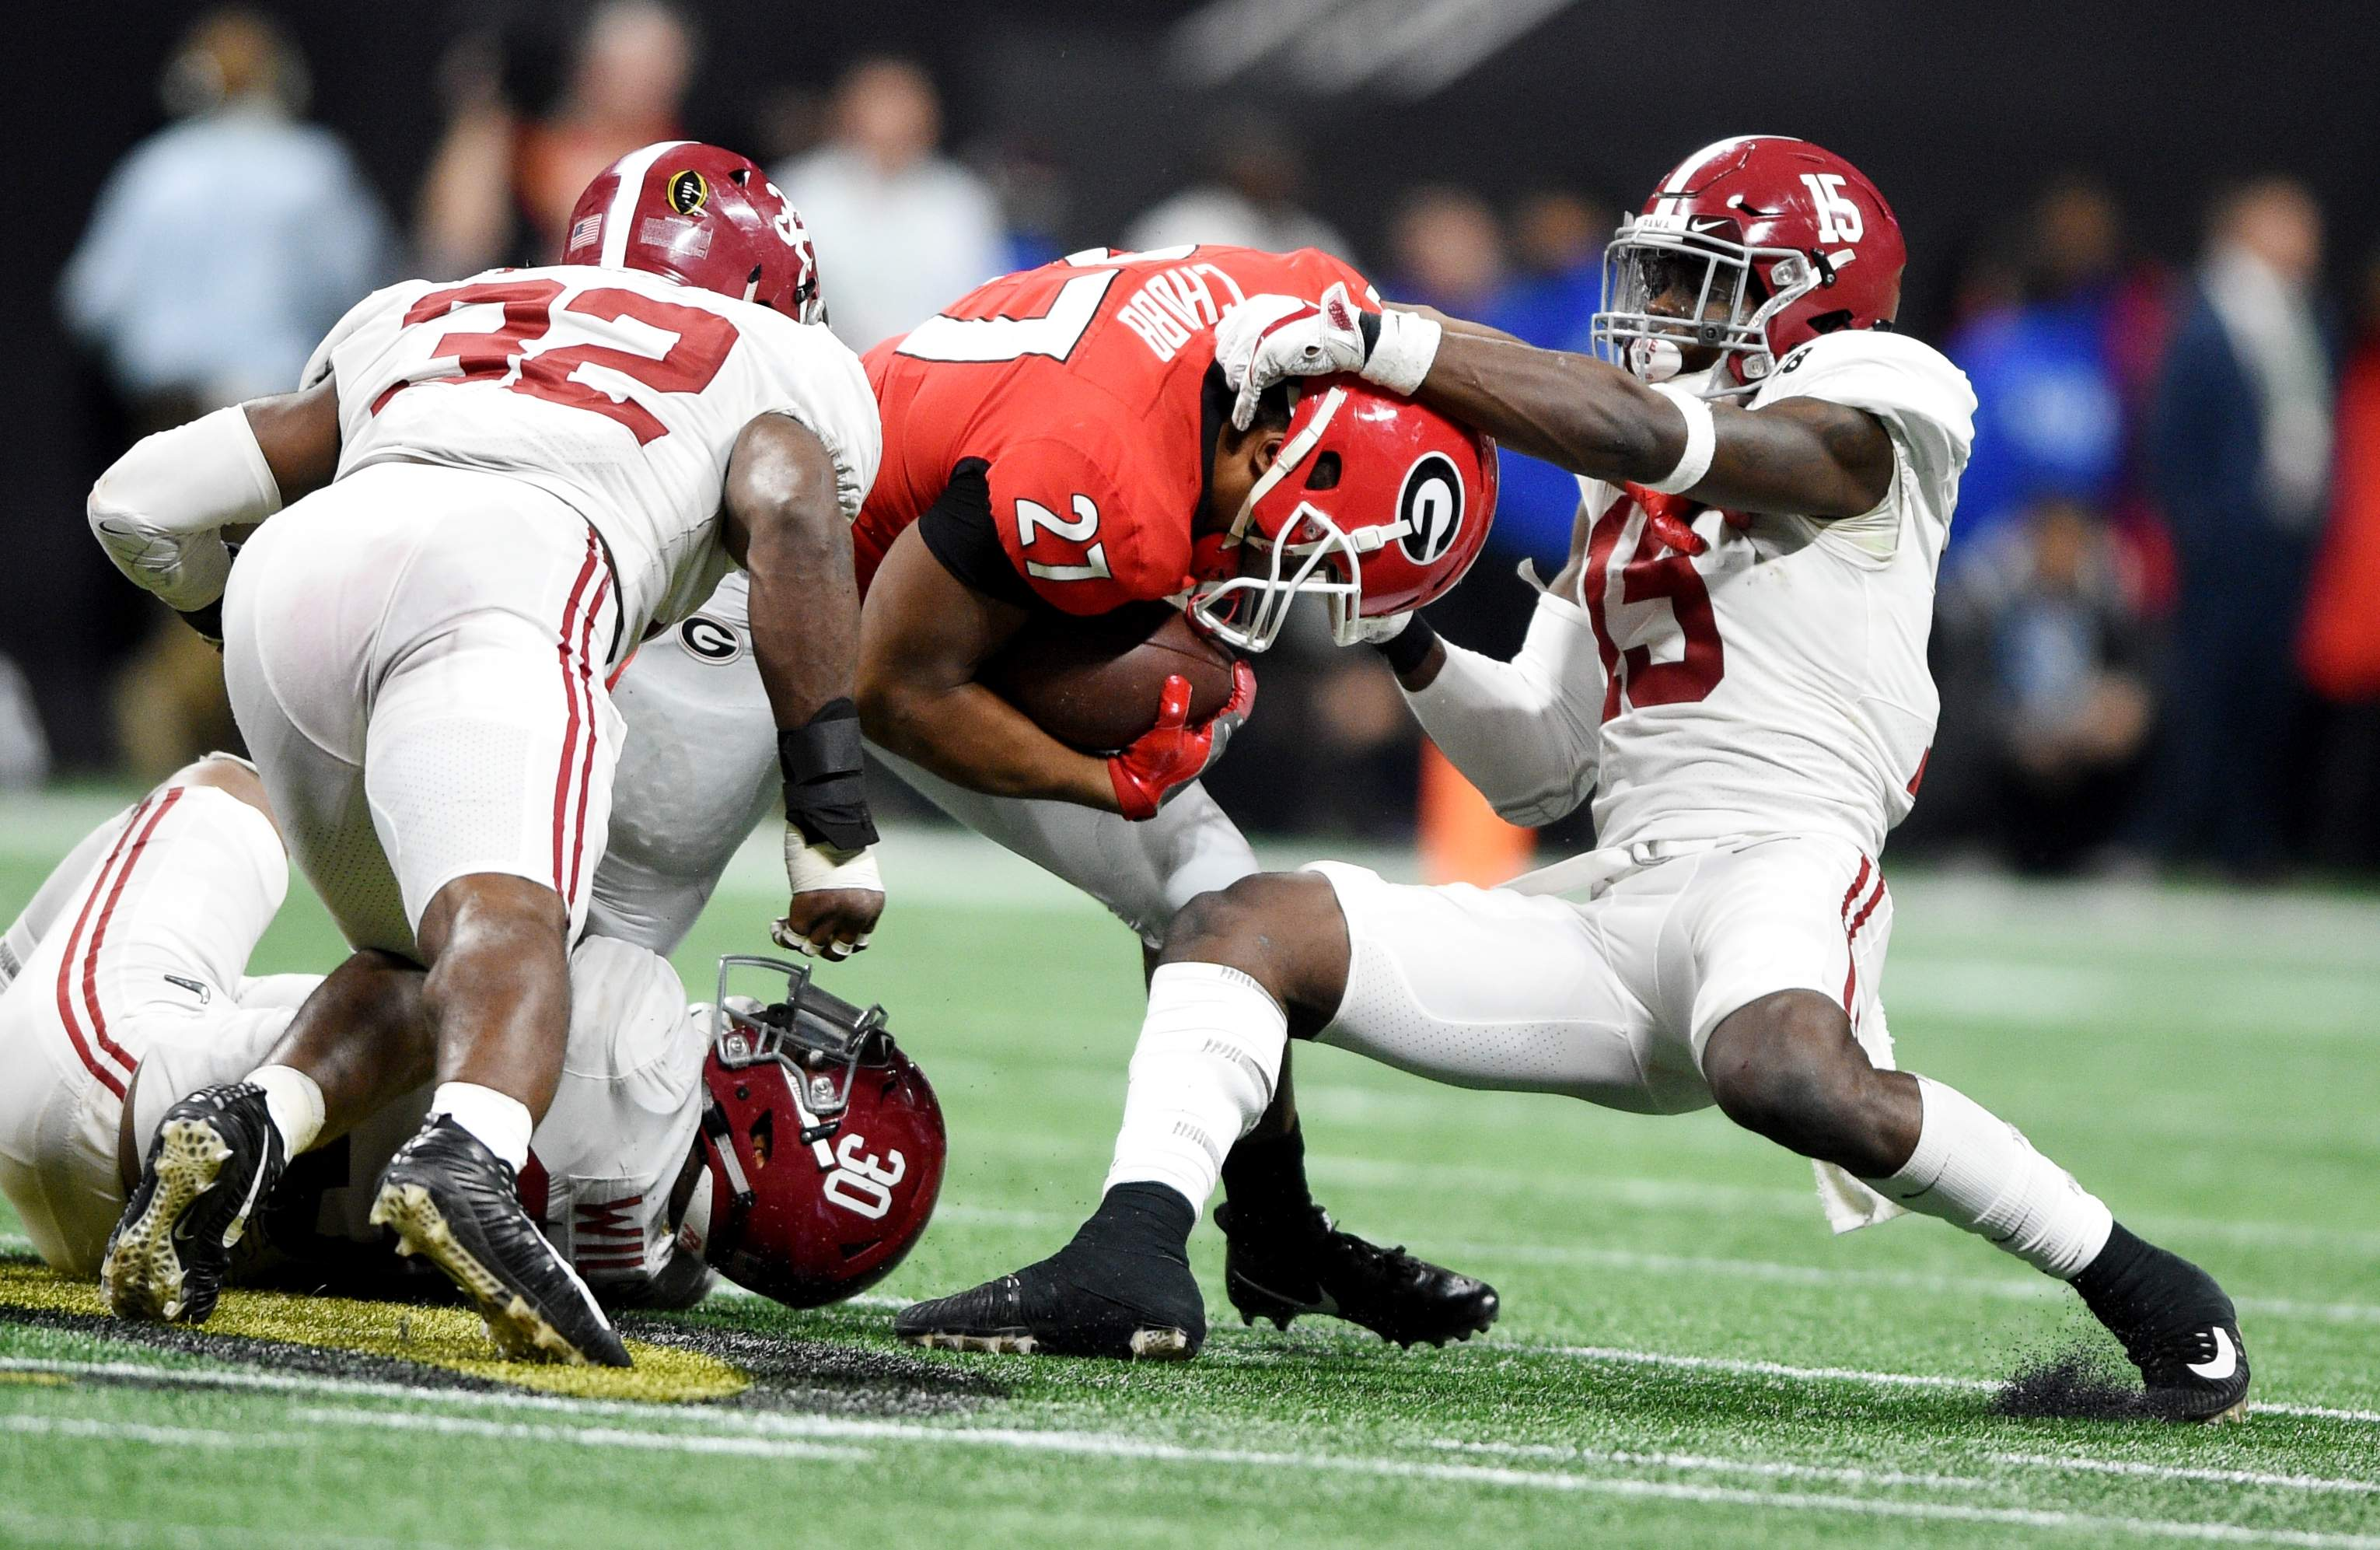 Alabama defenders wrestle down Georgia's Nick Chubb during the 2018 College Football Playoff National Championship at Mercedes-Benz Stadium in Atlanta, Ga., Monday afternoon January 8, 2018. MICHAEL HOLAHAN/AUGUSTA CHRONICLE